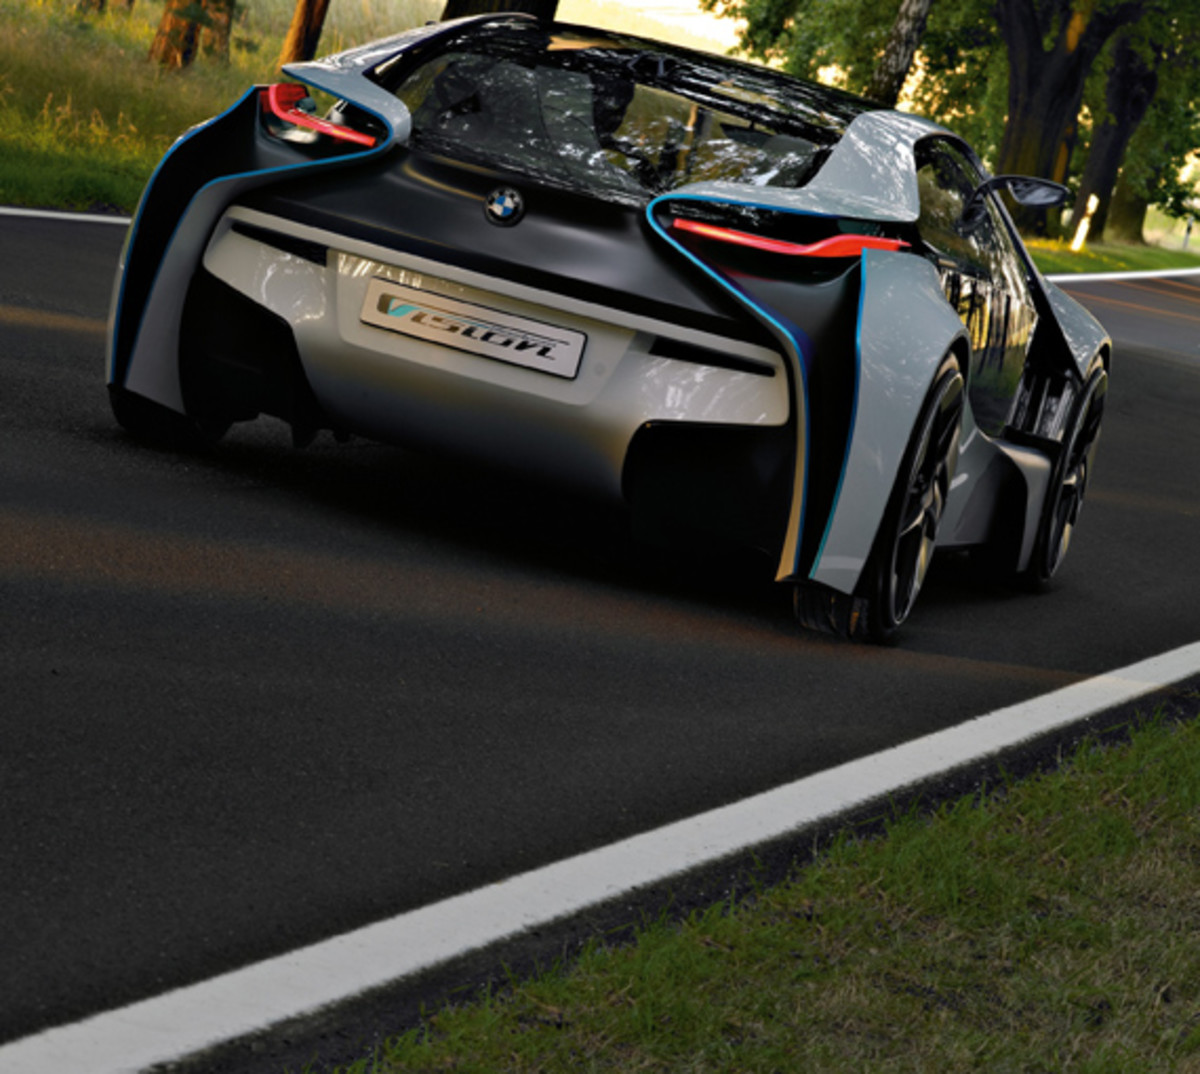 BMW-Vision-EfficientDynamics-woods-07